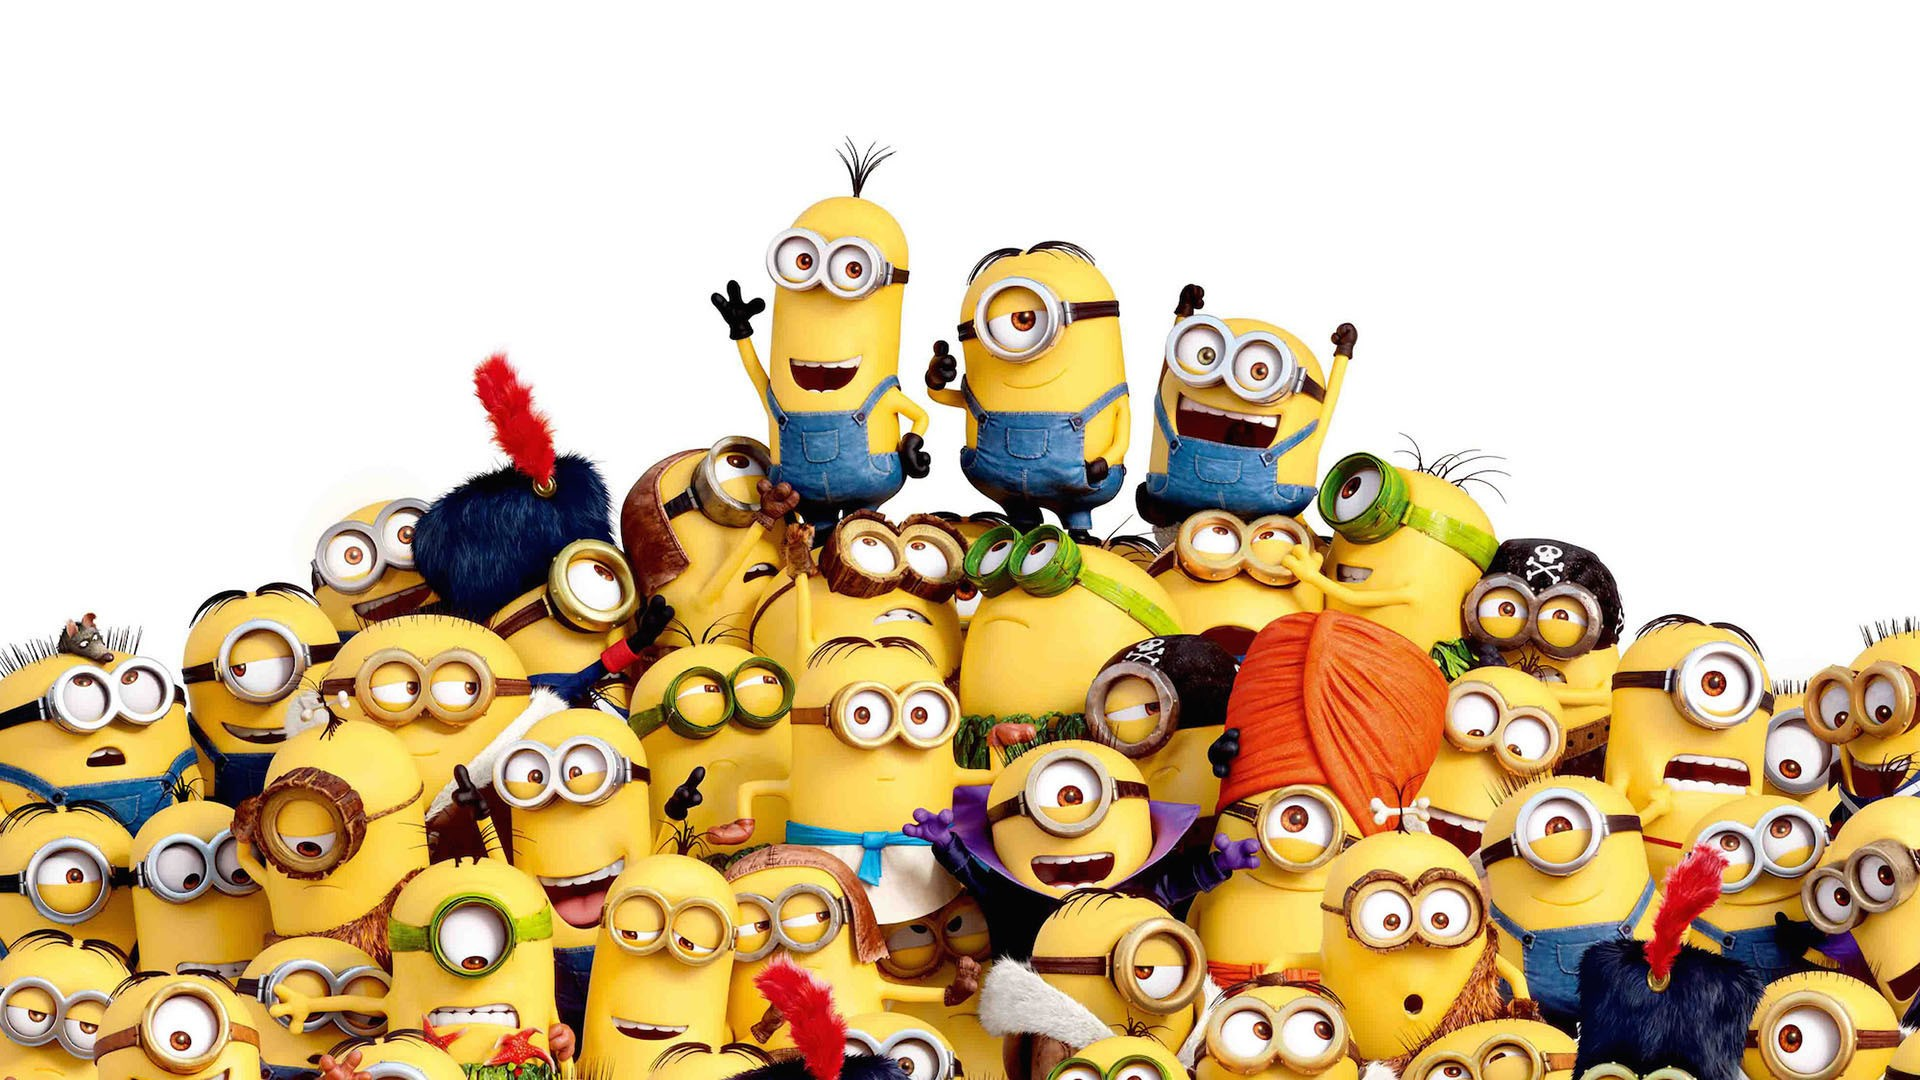 1920x1080-free-desktop-downloads-minions-wallpaper-wpc900695